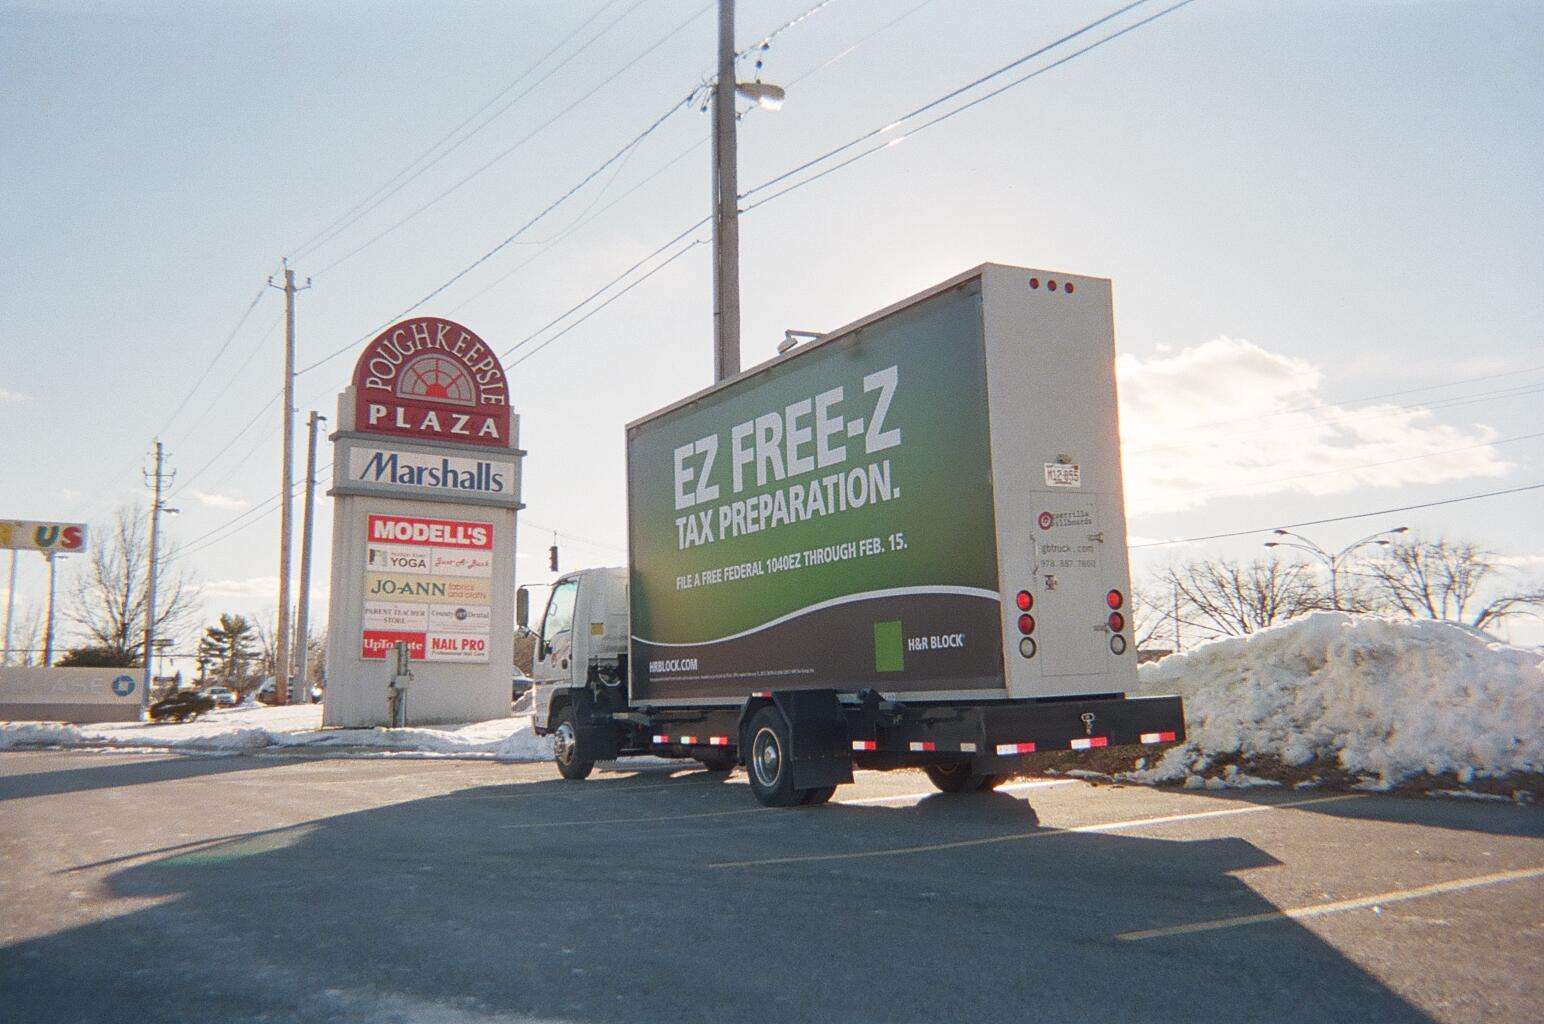 Poughkeepsie NY - H&R Block Mobile Billboard Ad Campaign